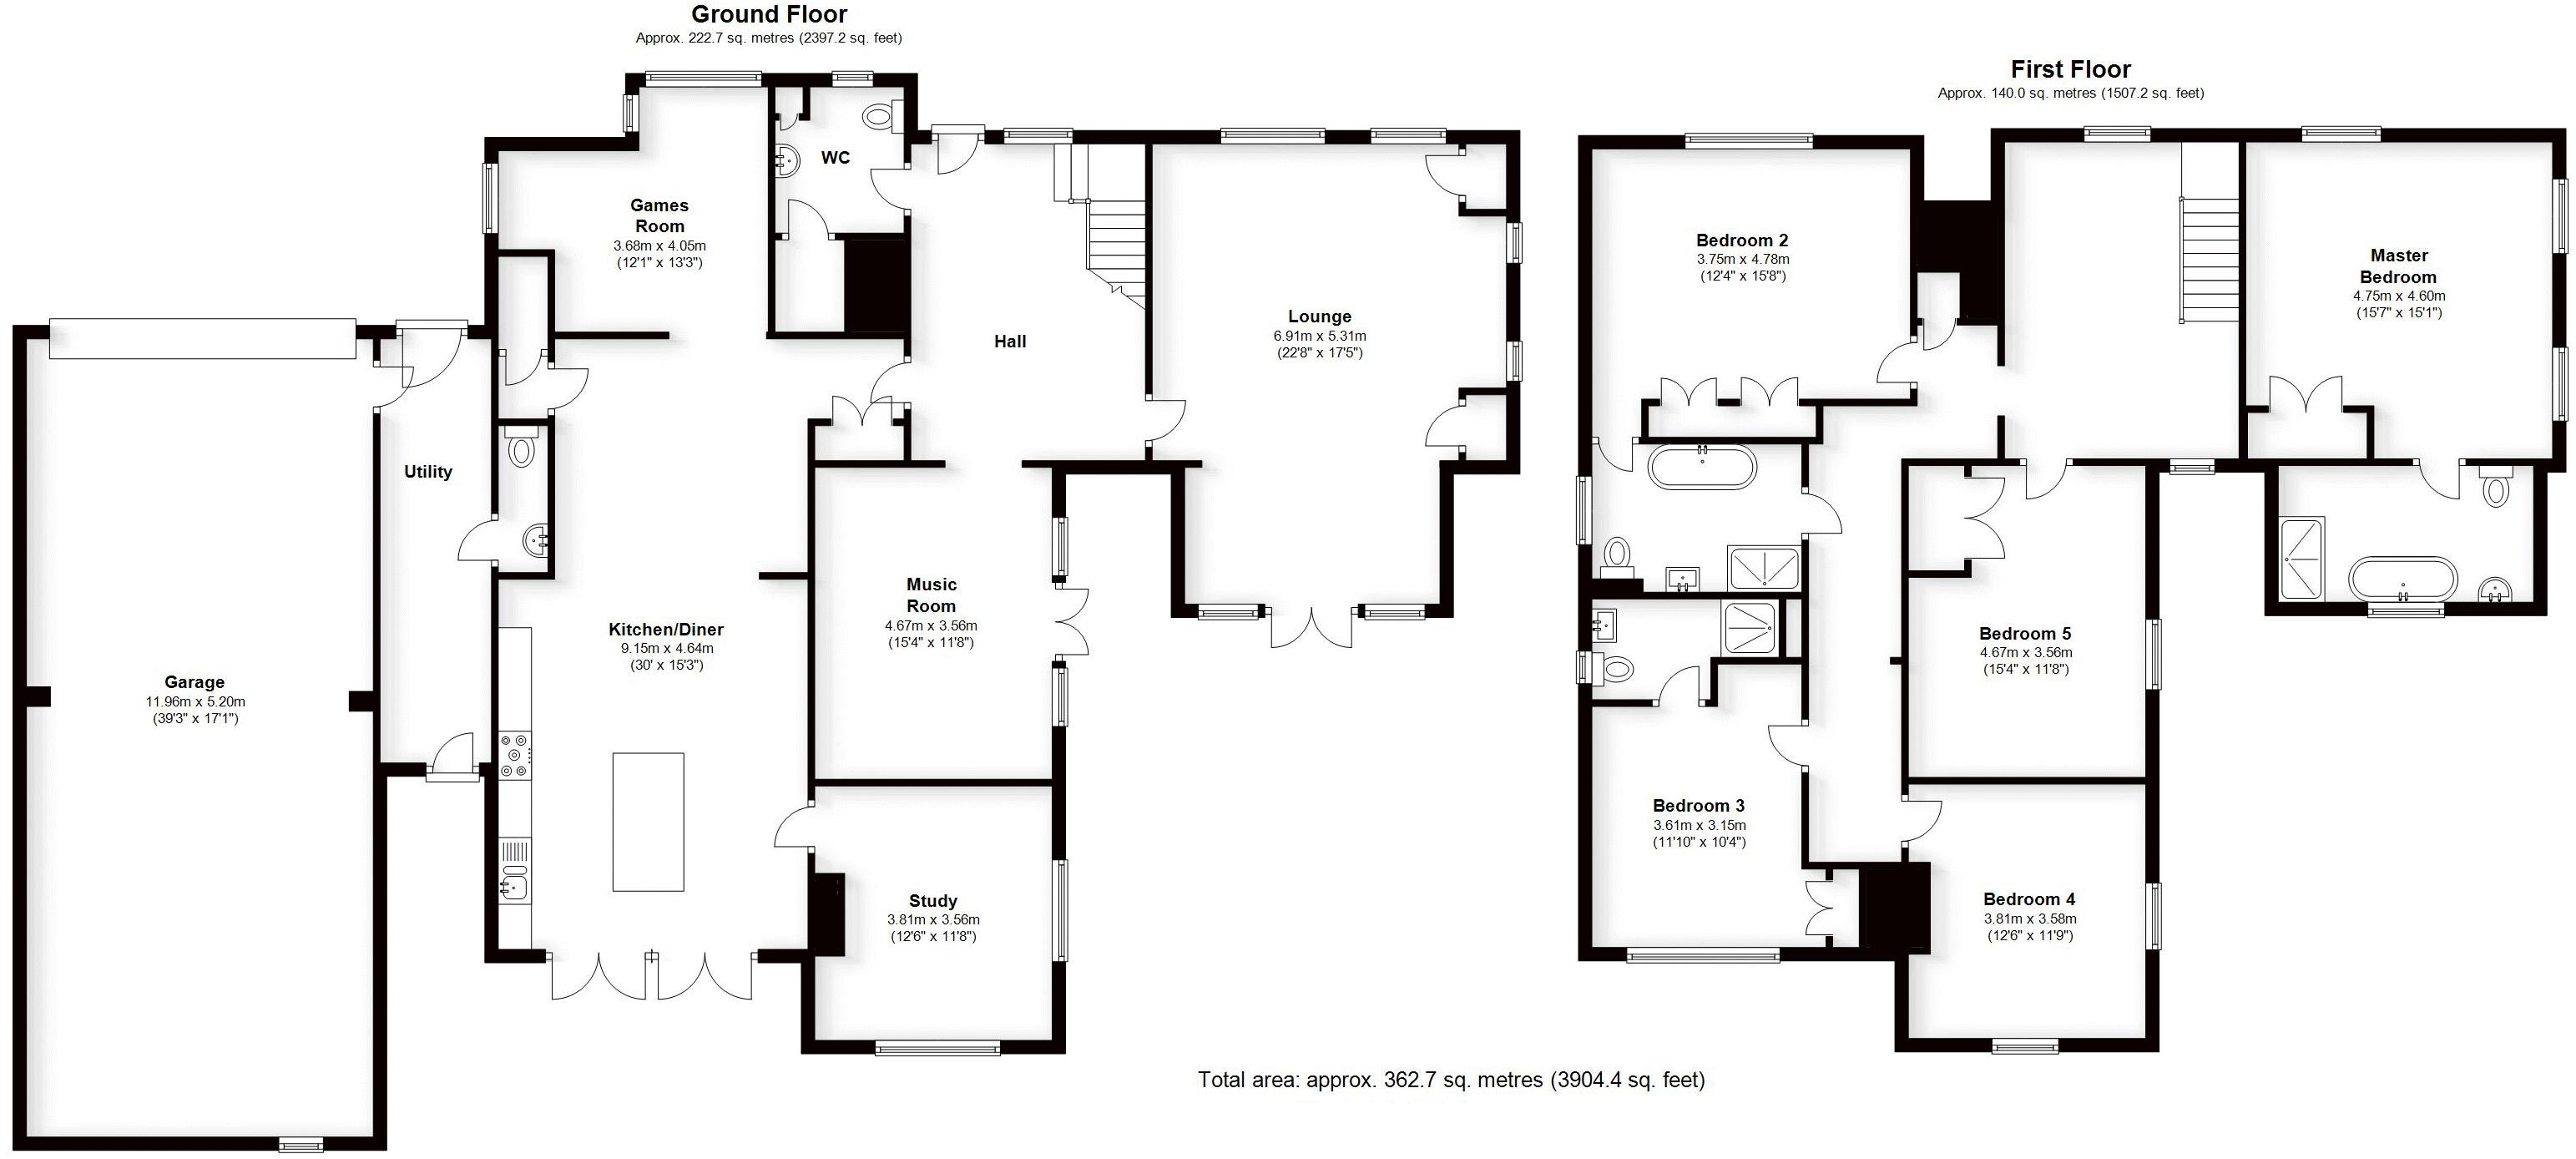 Tilehouse Green Lane, West Midlands. Floorplan.